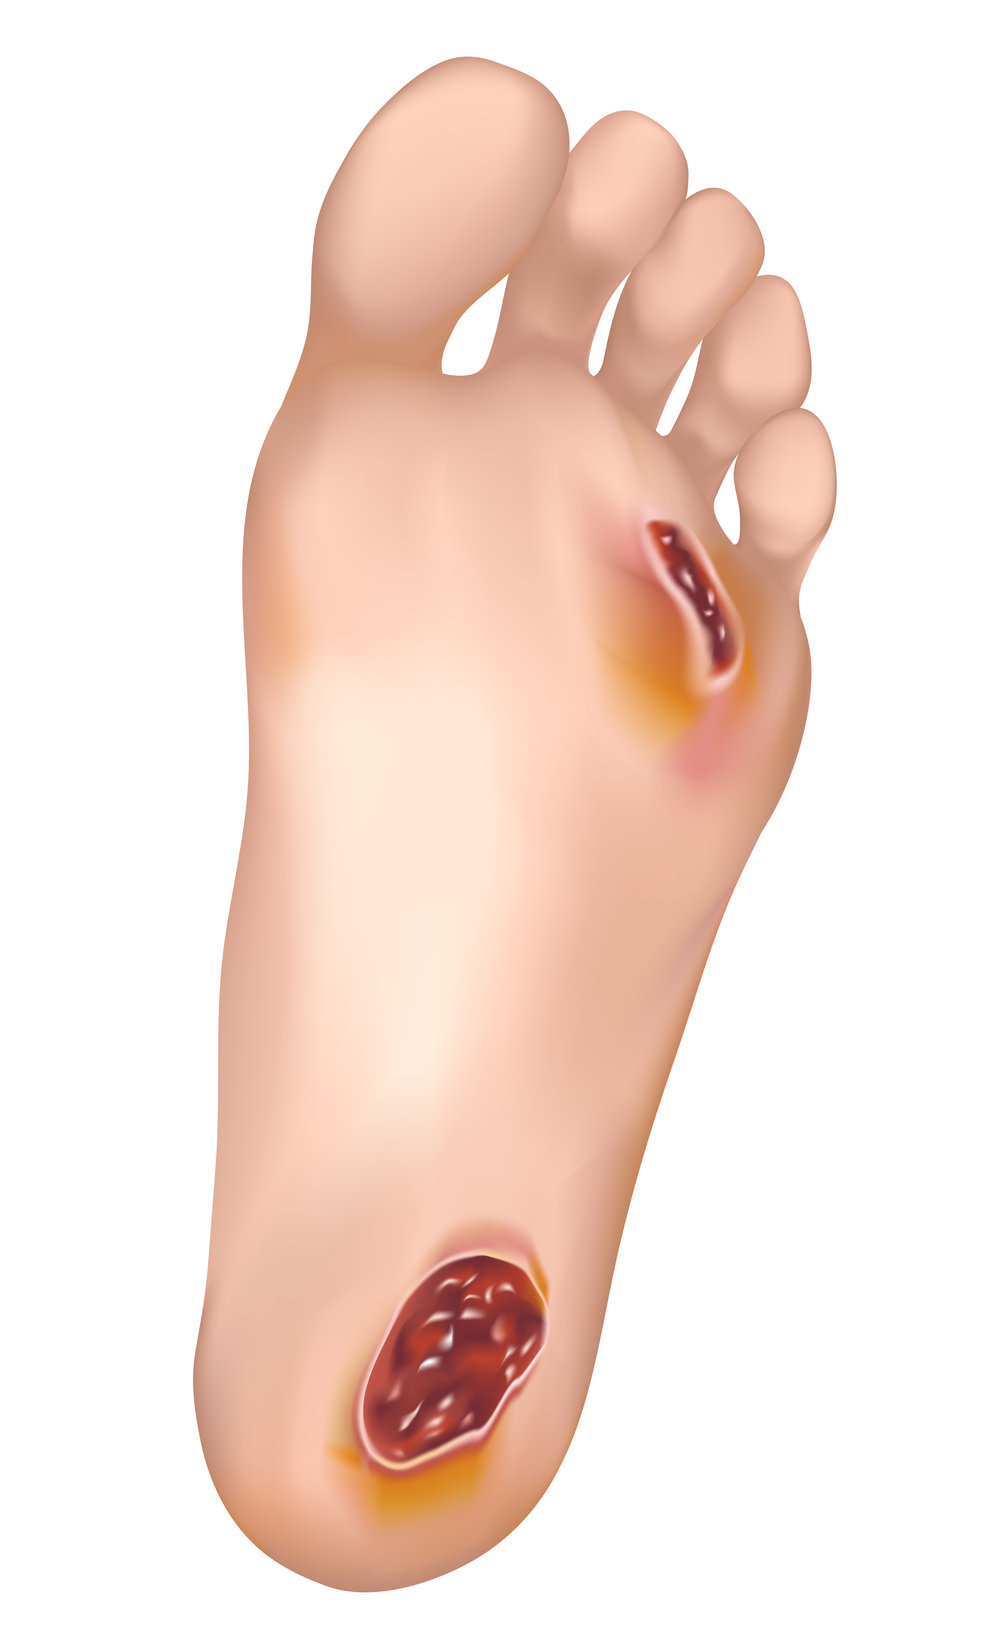 foot-ulcer-diabetic-wound-doctor-podiatrist-marquette-munising-upper-peninsula-michigan